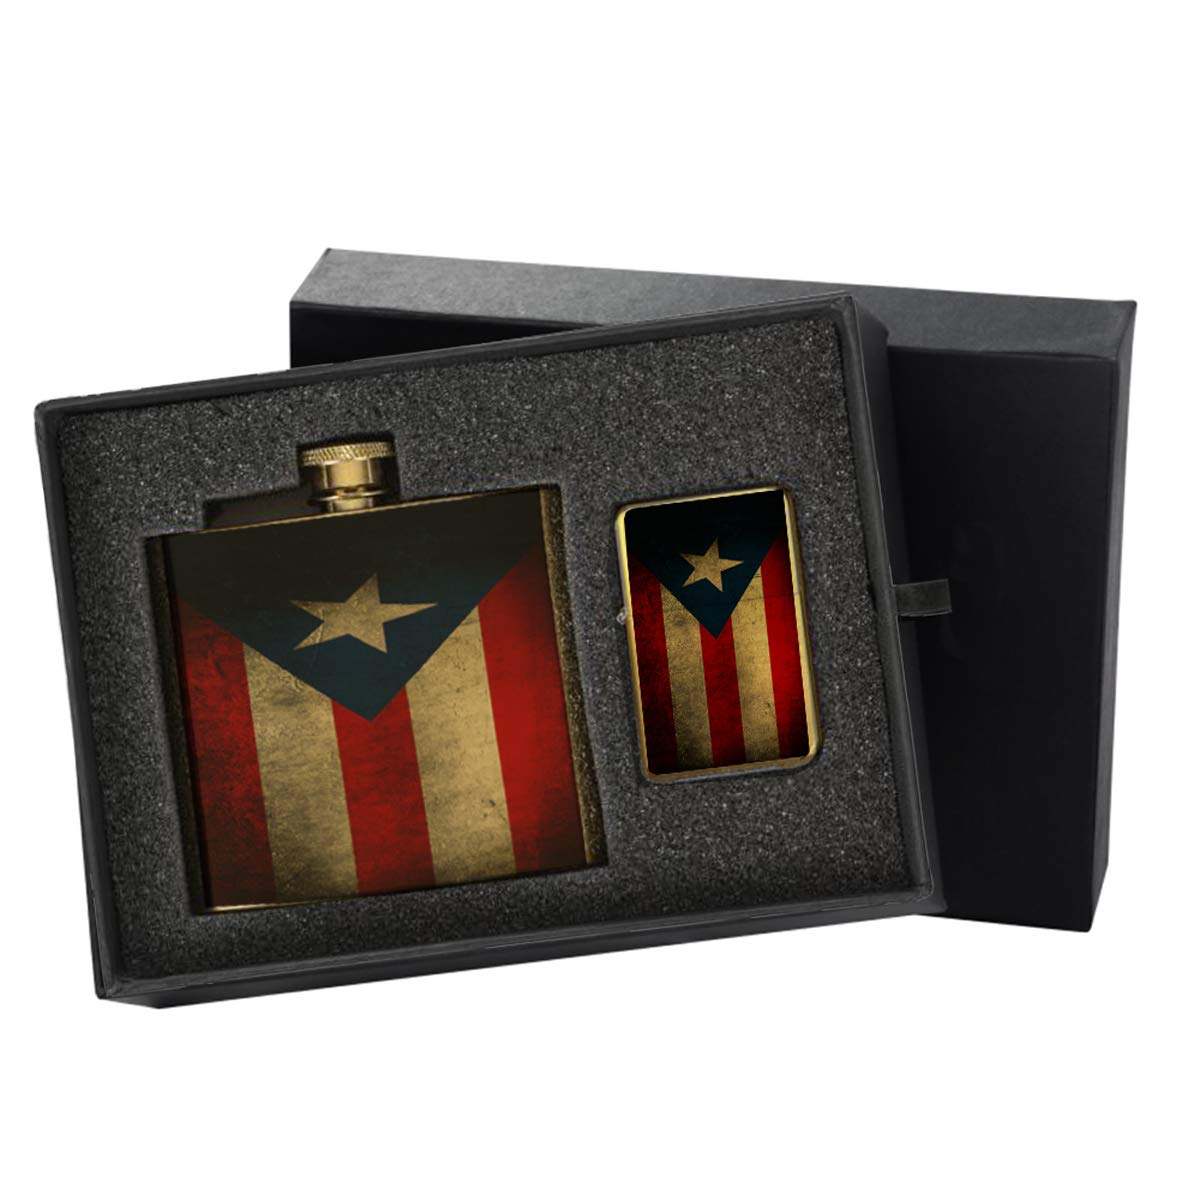 Puerto Rico Flag - Gold Lighter and Pocket Hip Liquor Flask Survival Camping Gift Box Set